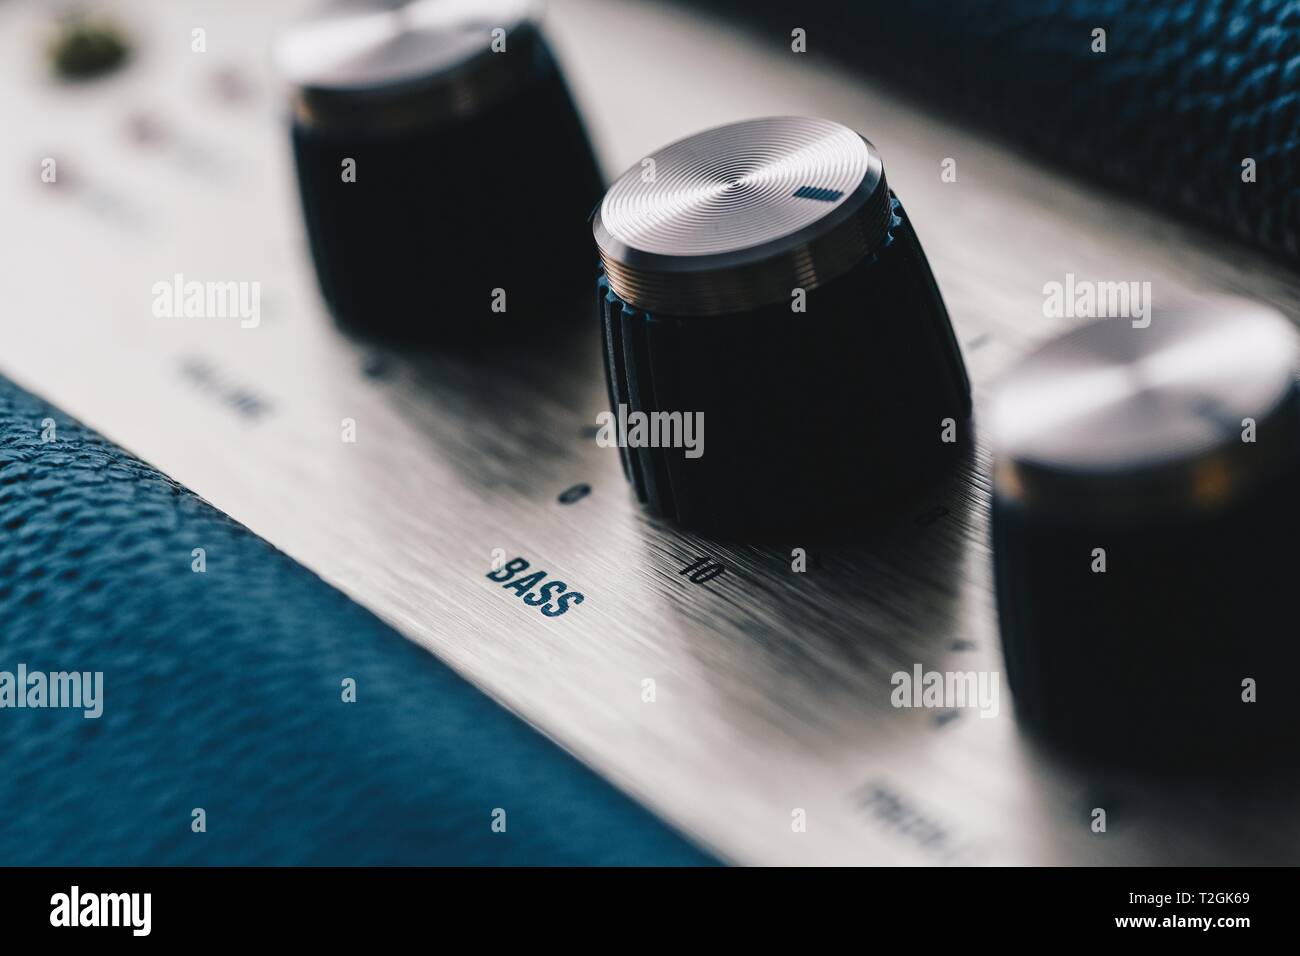 Bass control knob on music amplifier equalizer Stock Photo